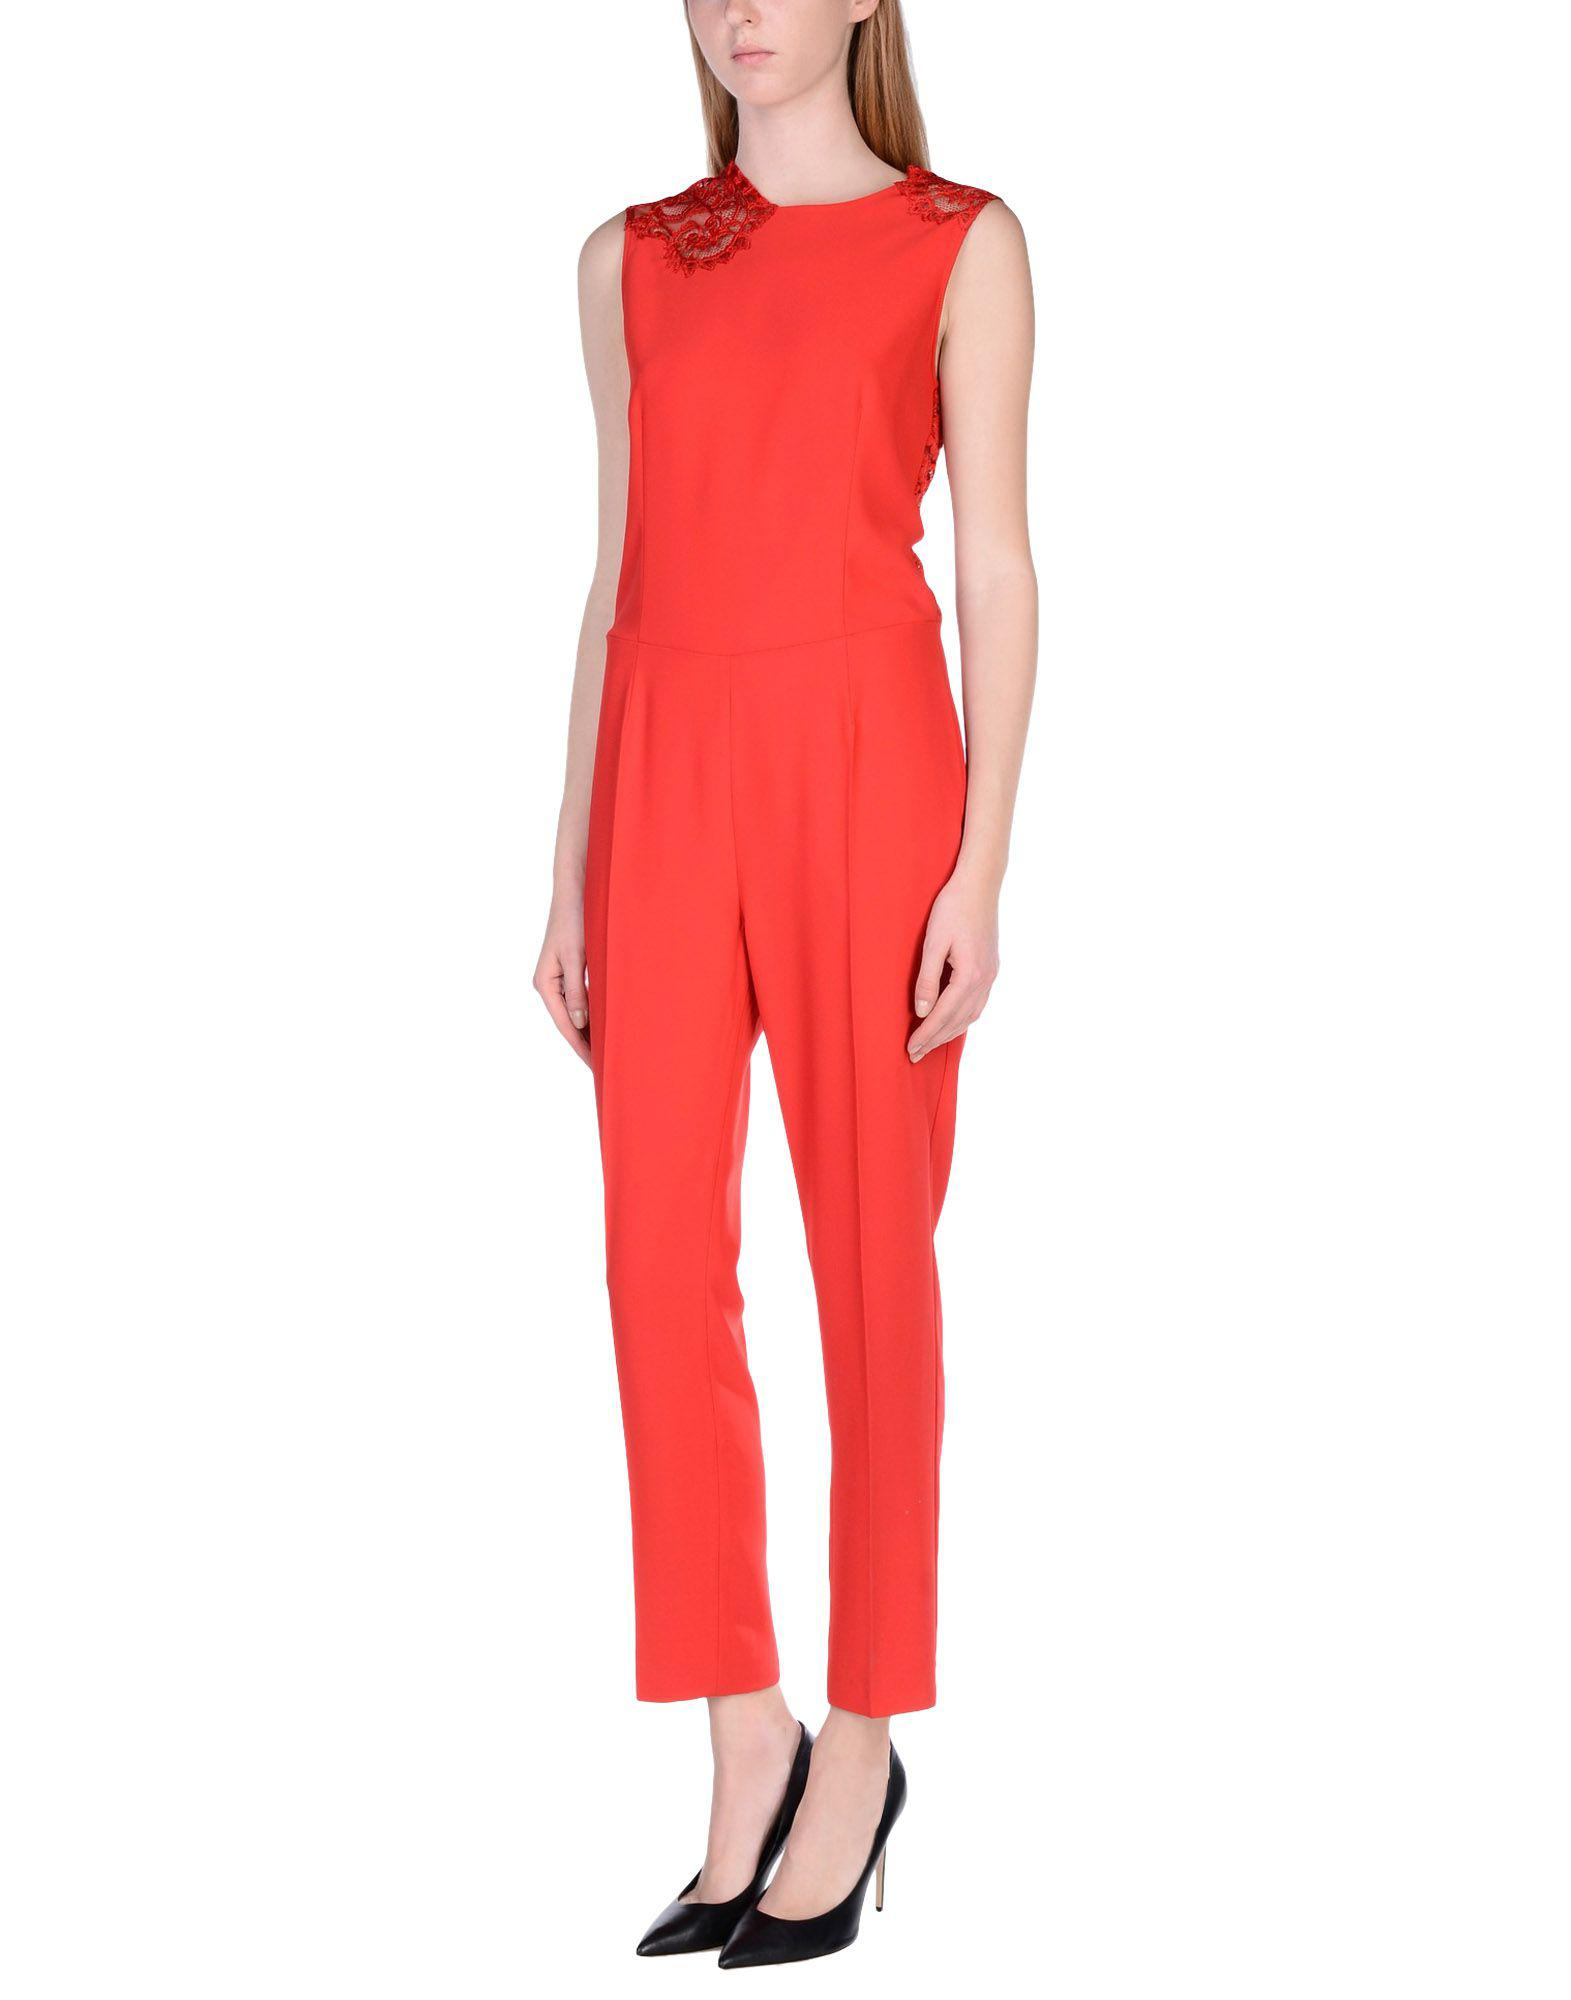 6a972fd28e8 Lyst - Ermanno Scervino Jumpsuit in Red